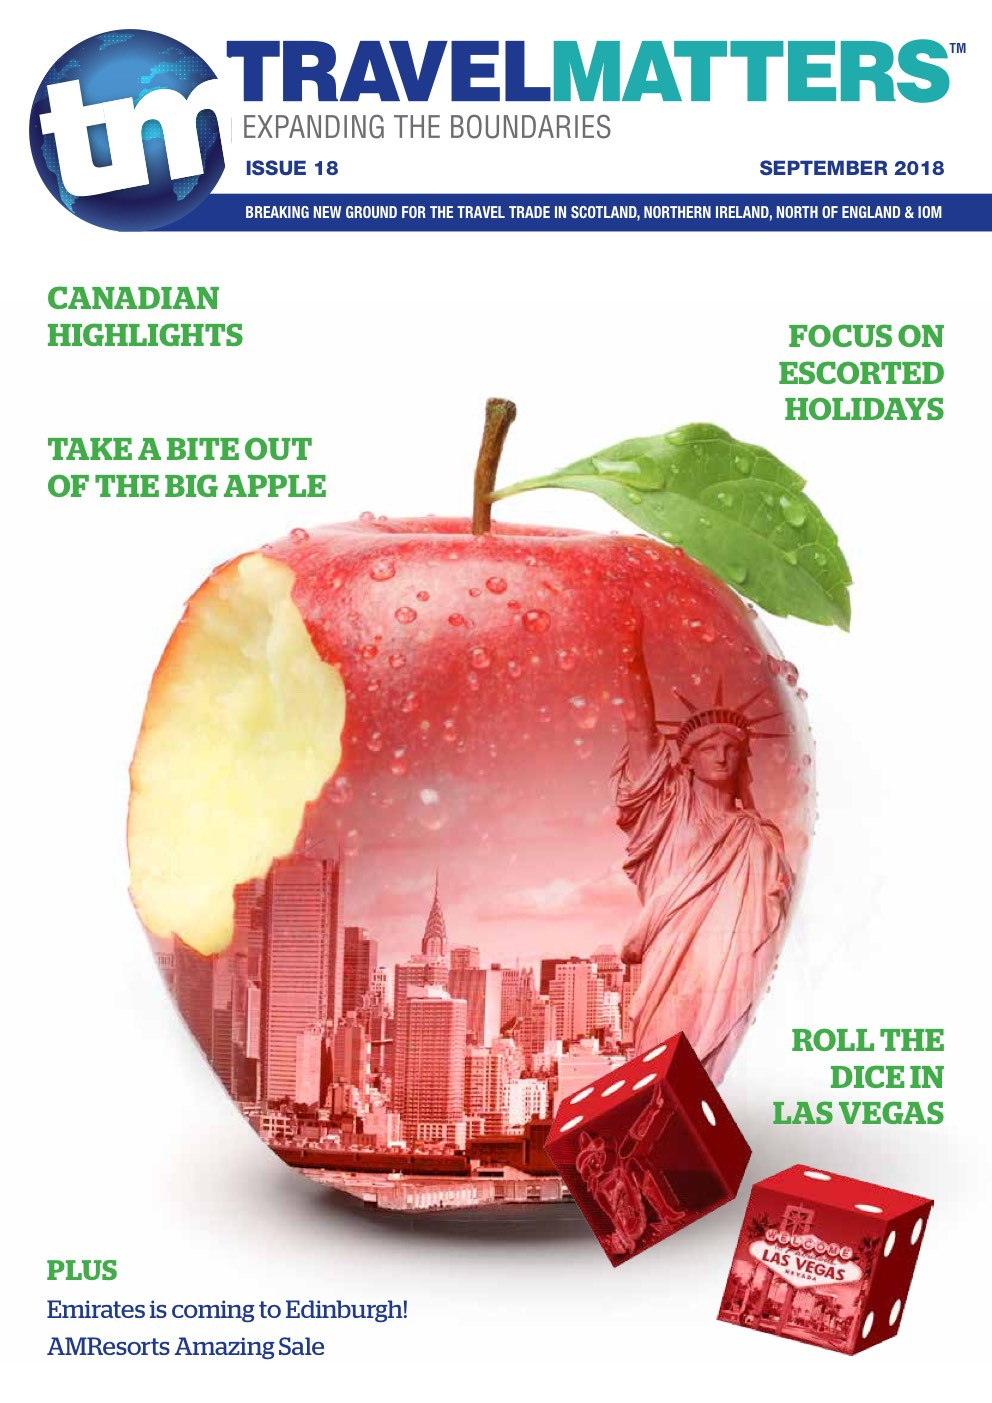 Travel Matters Issue 18 September 2018 Pages 1 - 50 - Text Version